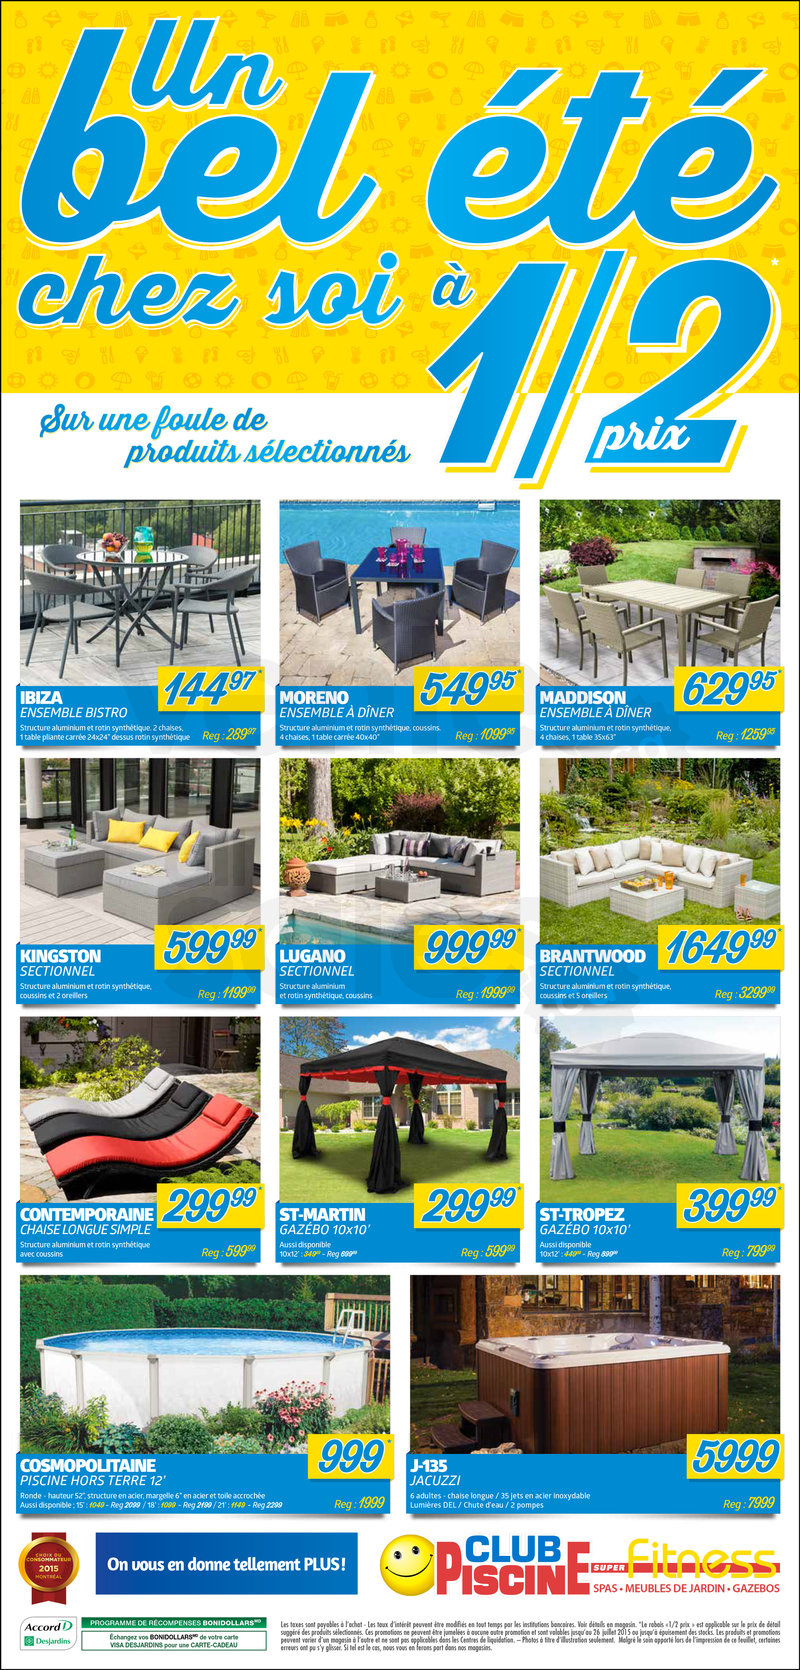 Club piscine 50 produits s lectionn s for Club piscine liquidation laval